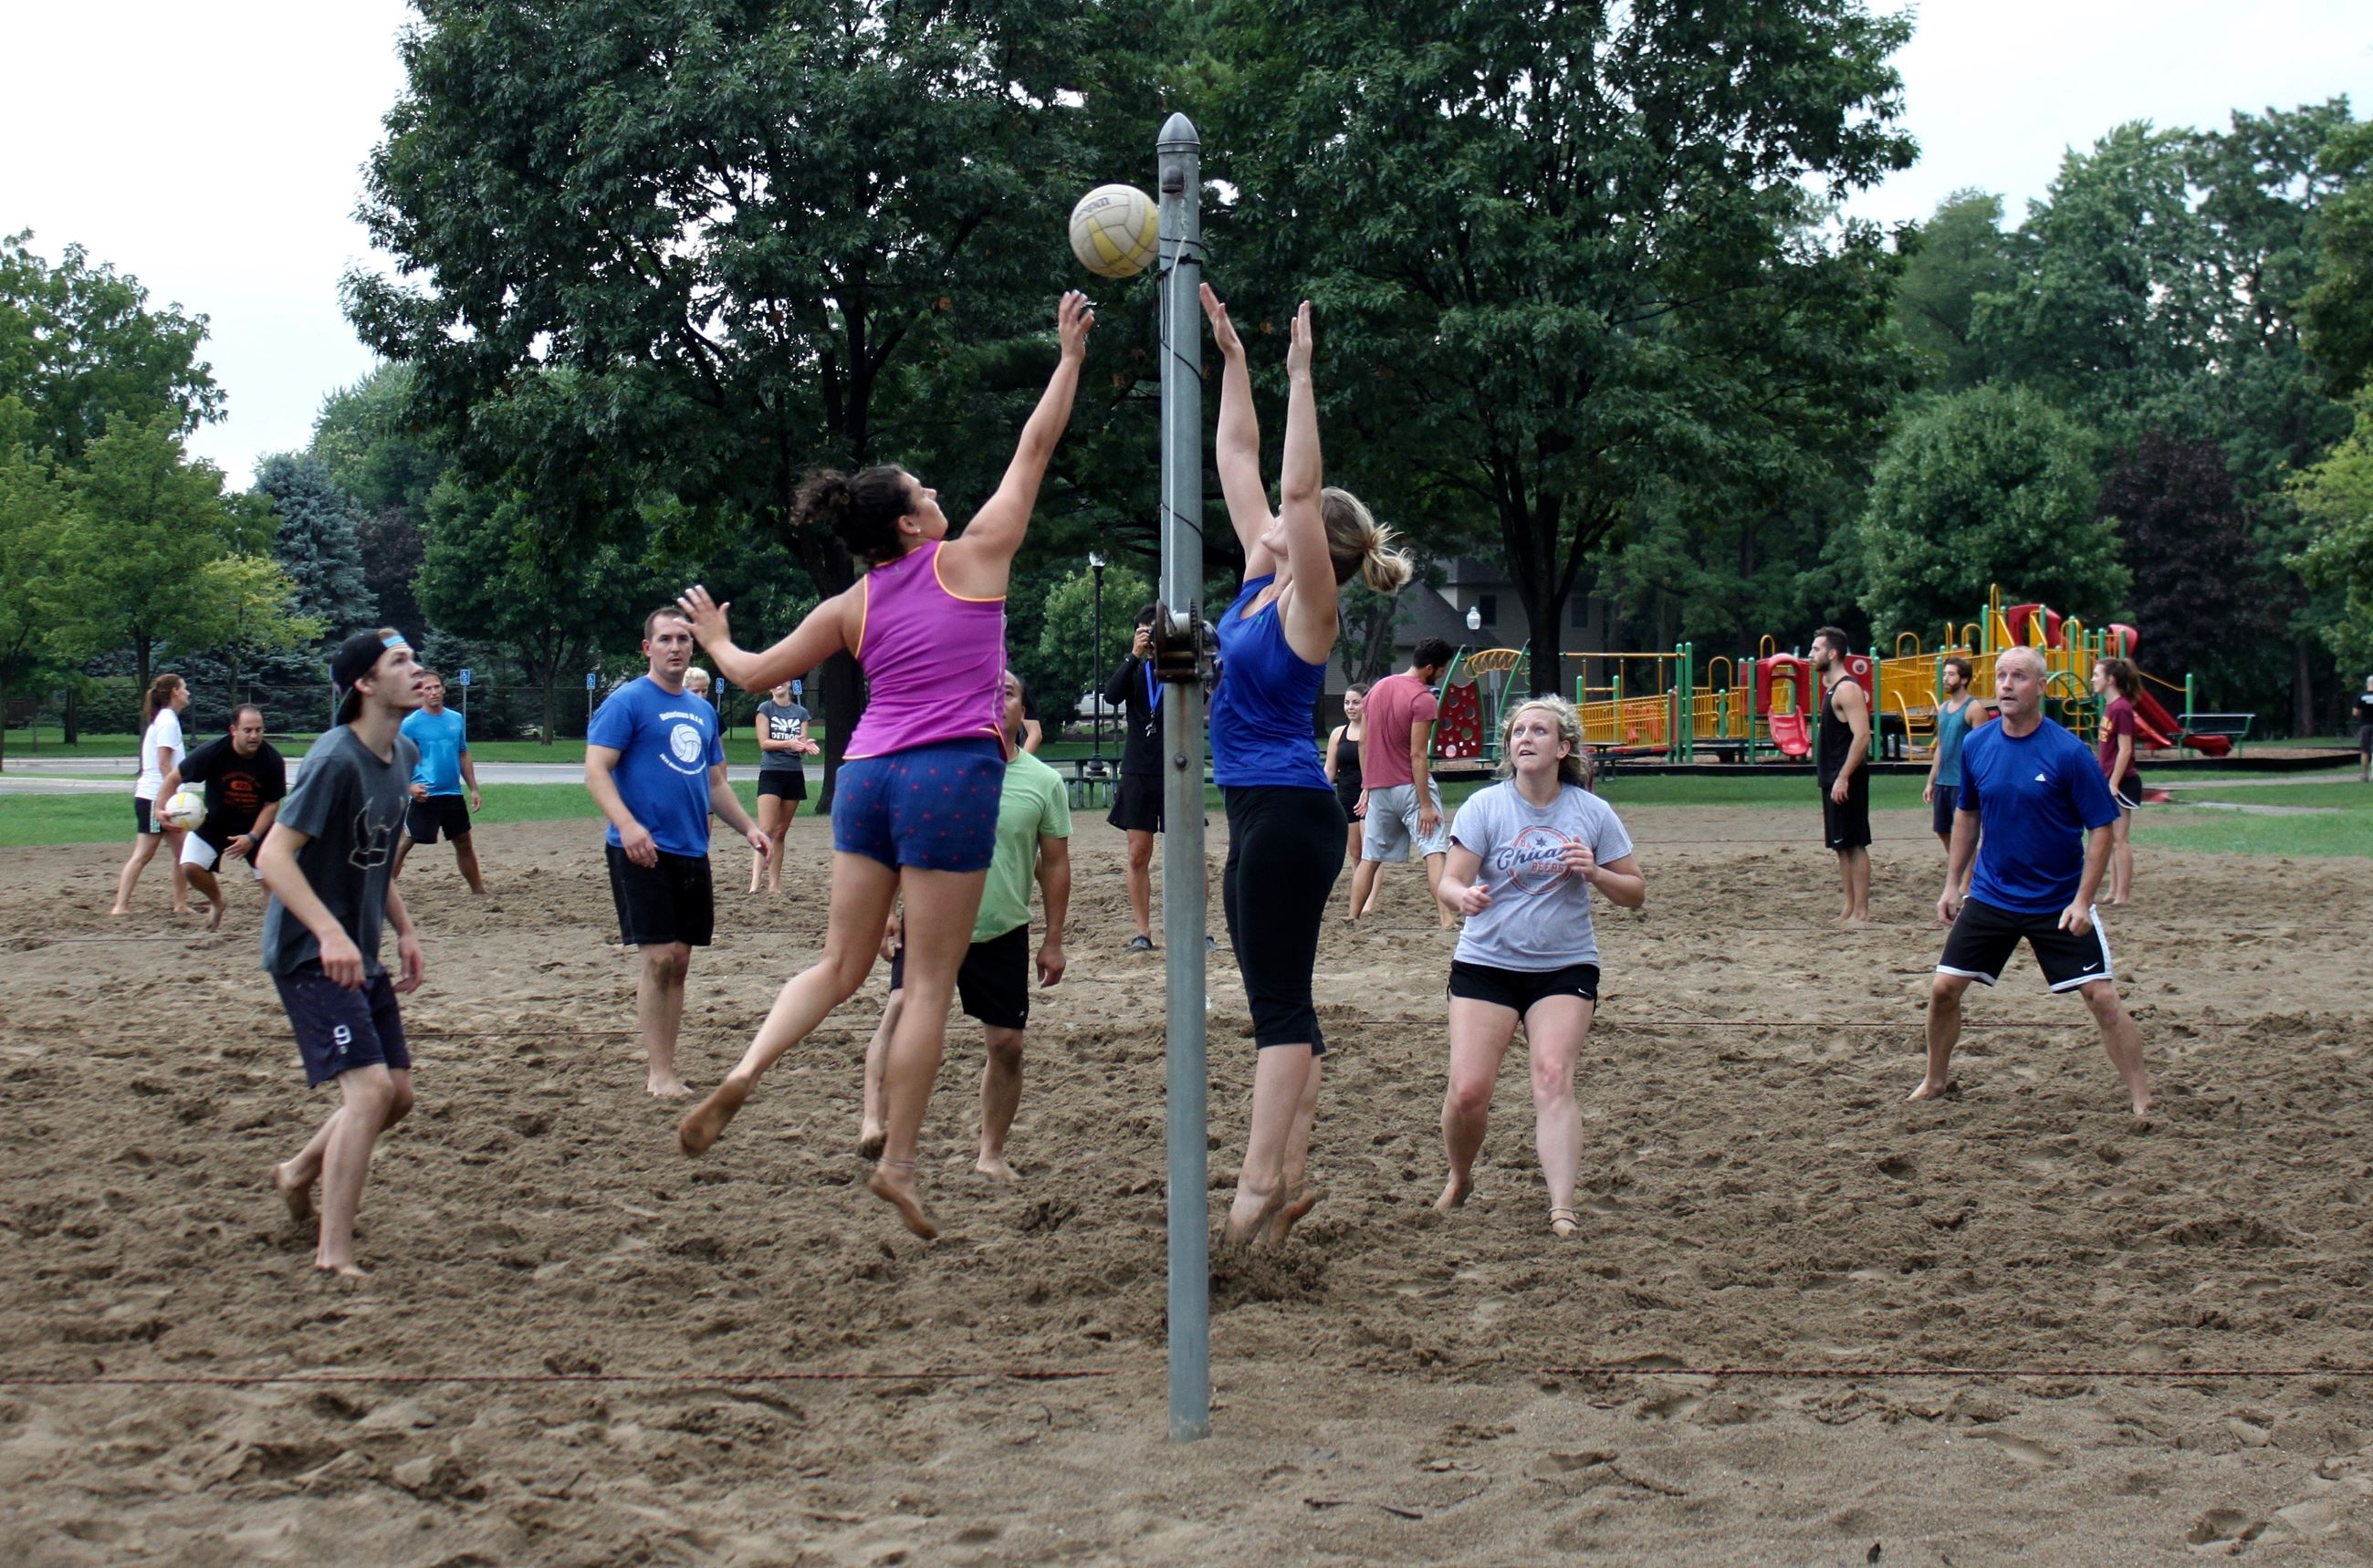 Co-ed Sand Volleyball